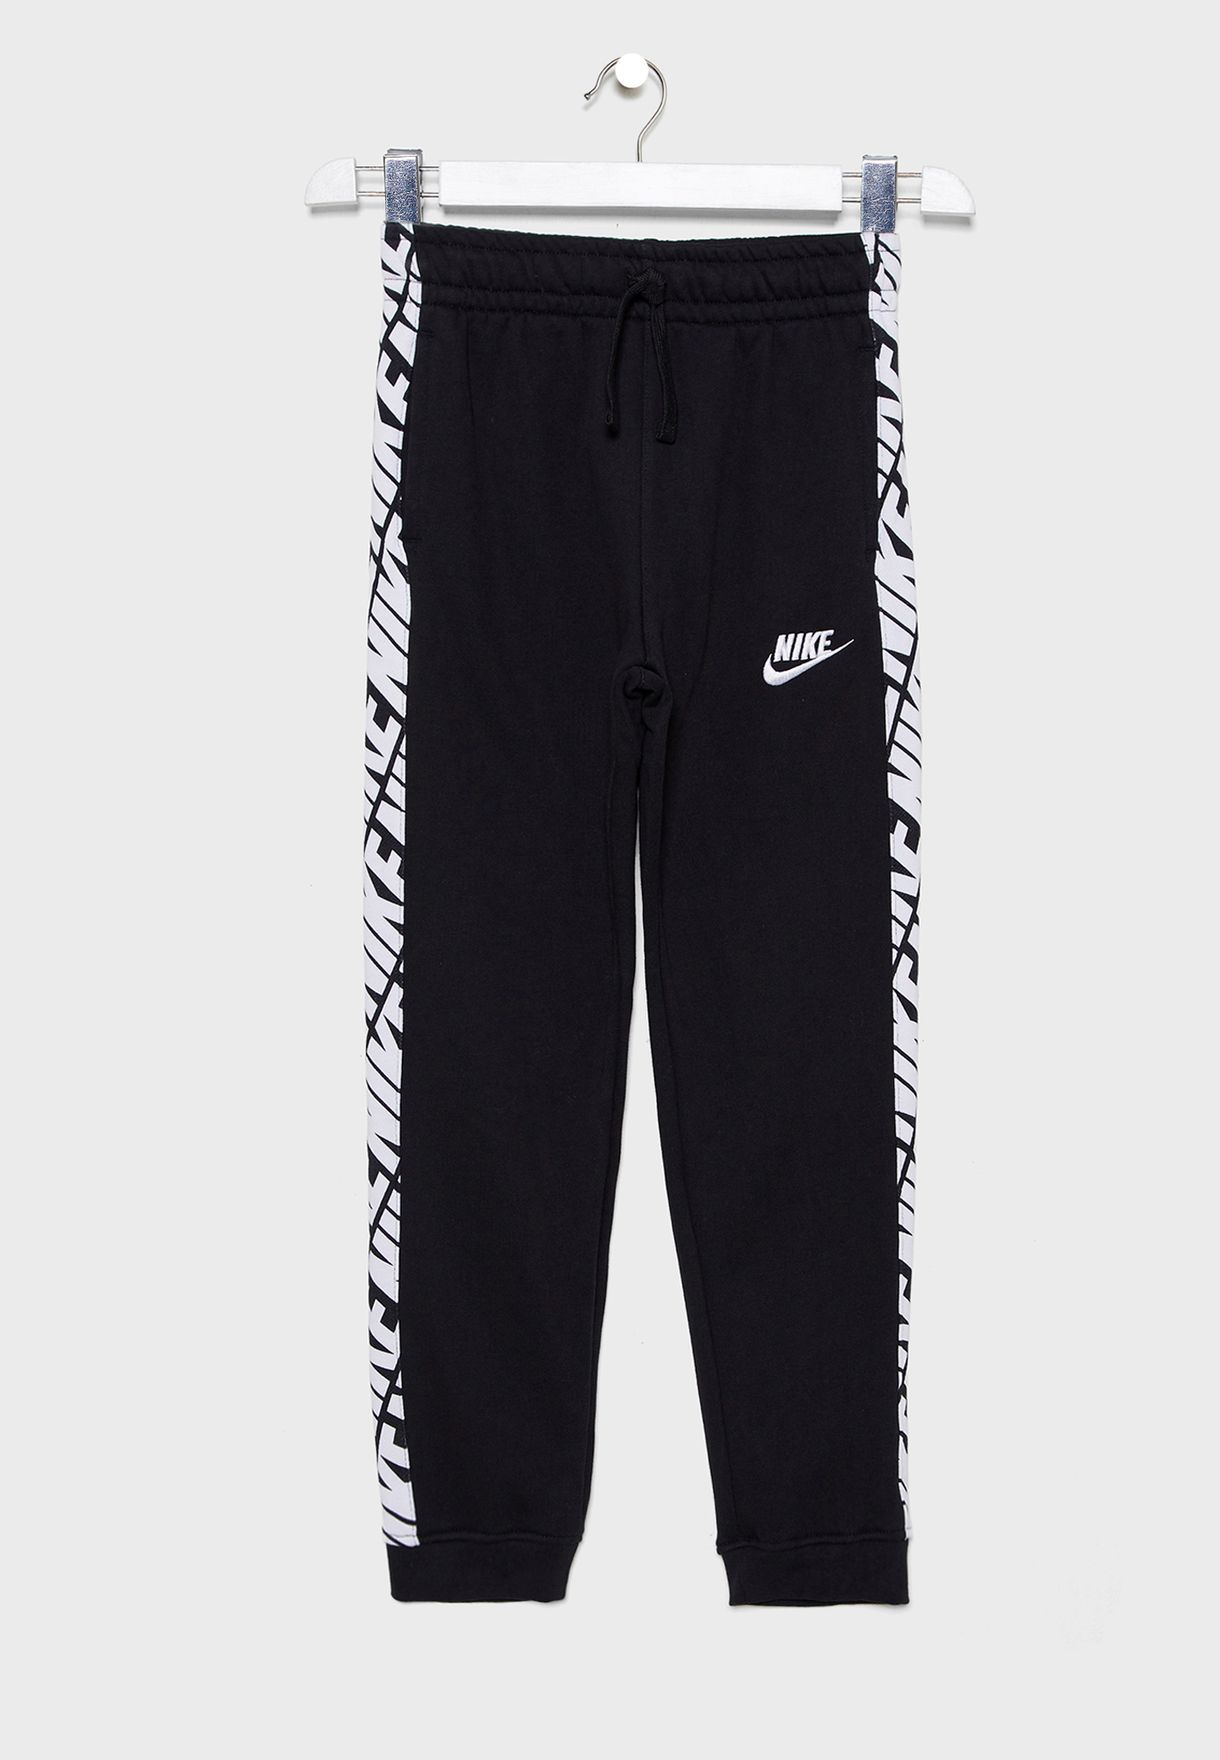 Youth NSW Energy Sweatpants